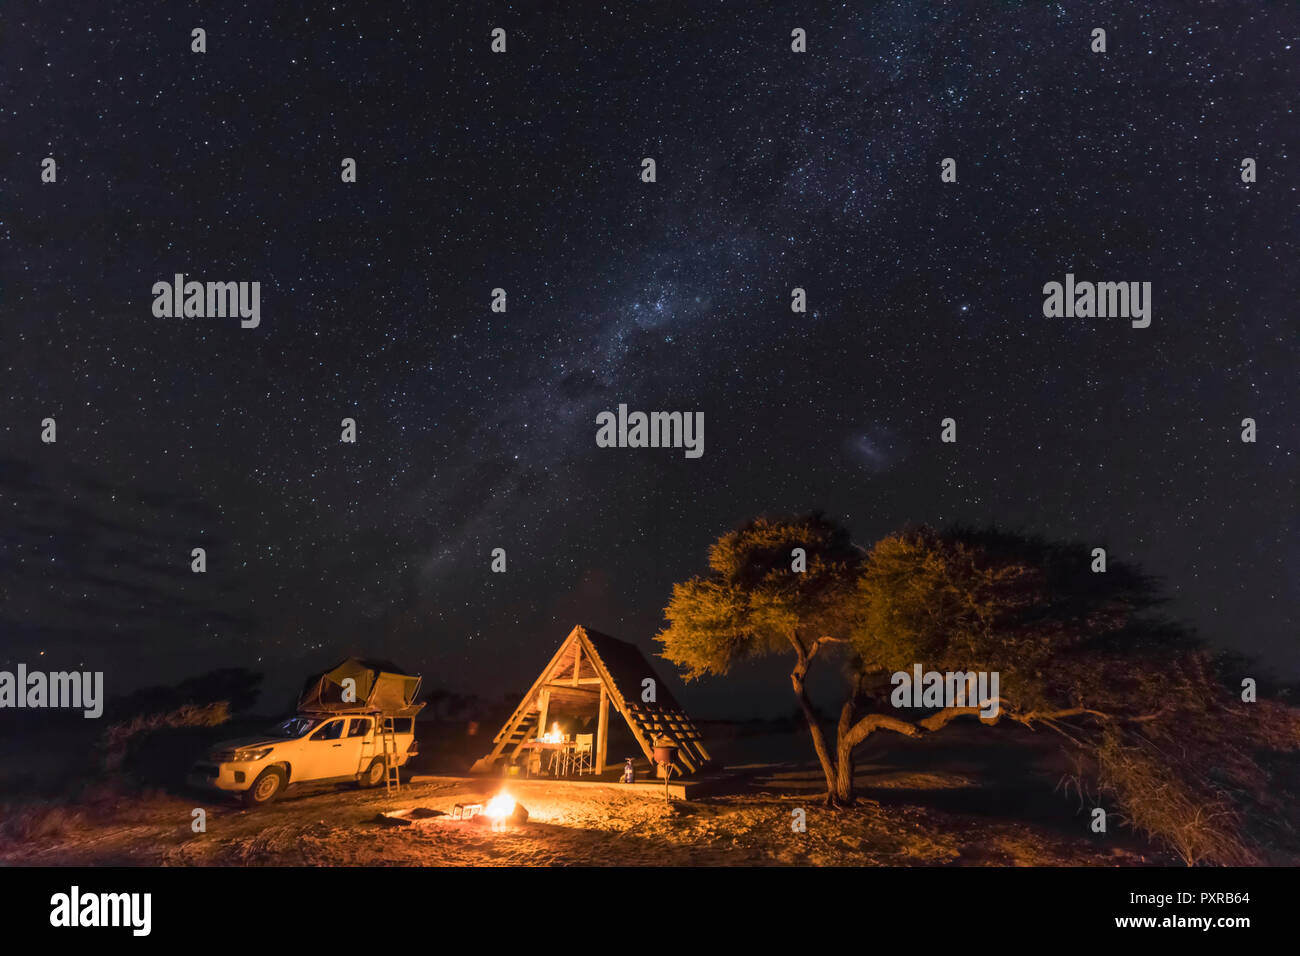 Africa, Botswana, Kgalagadi Transfrontier Park, Mabuasehube Game Reserve, Camping ground under starry sky - Stock Image